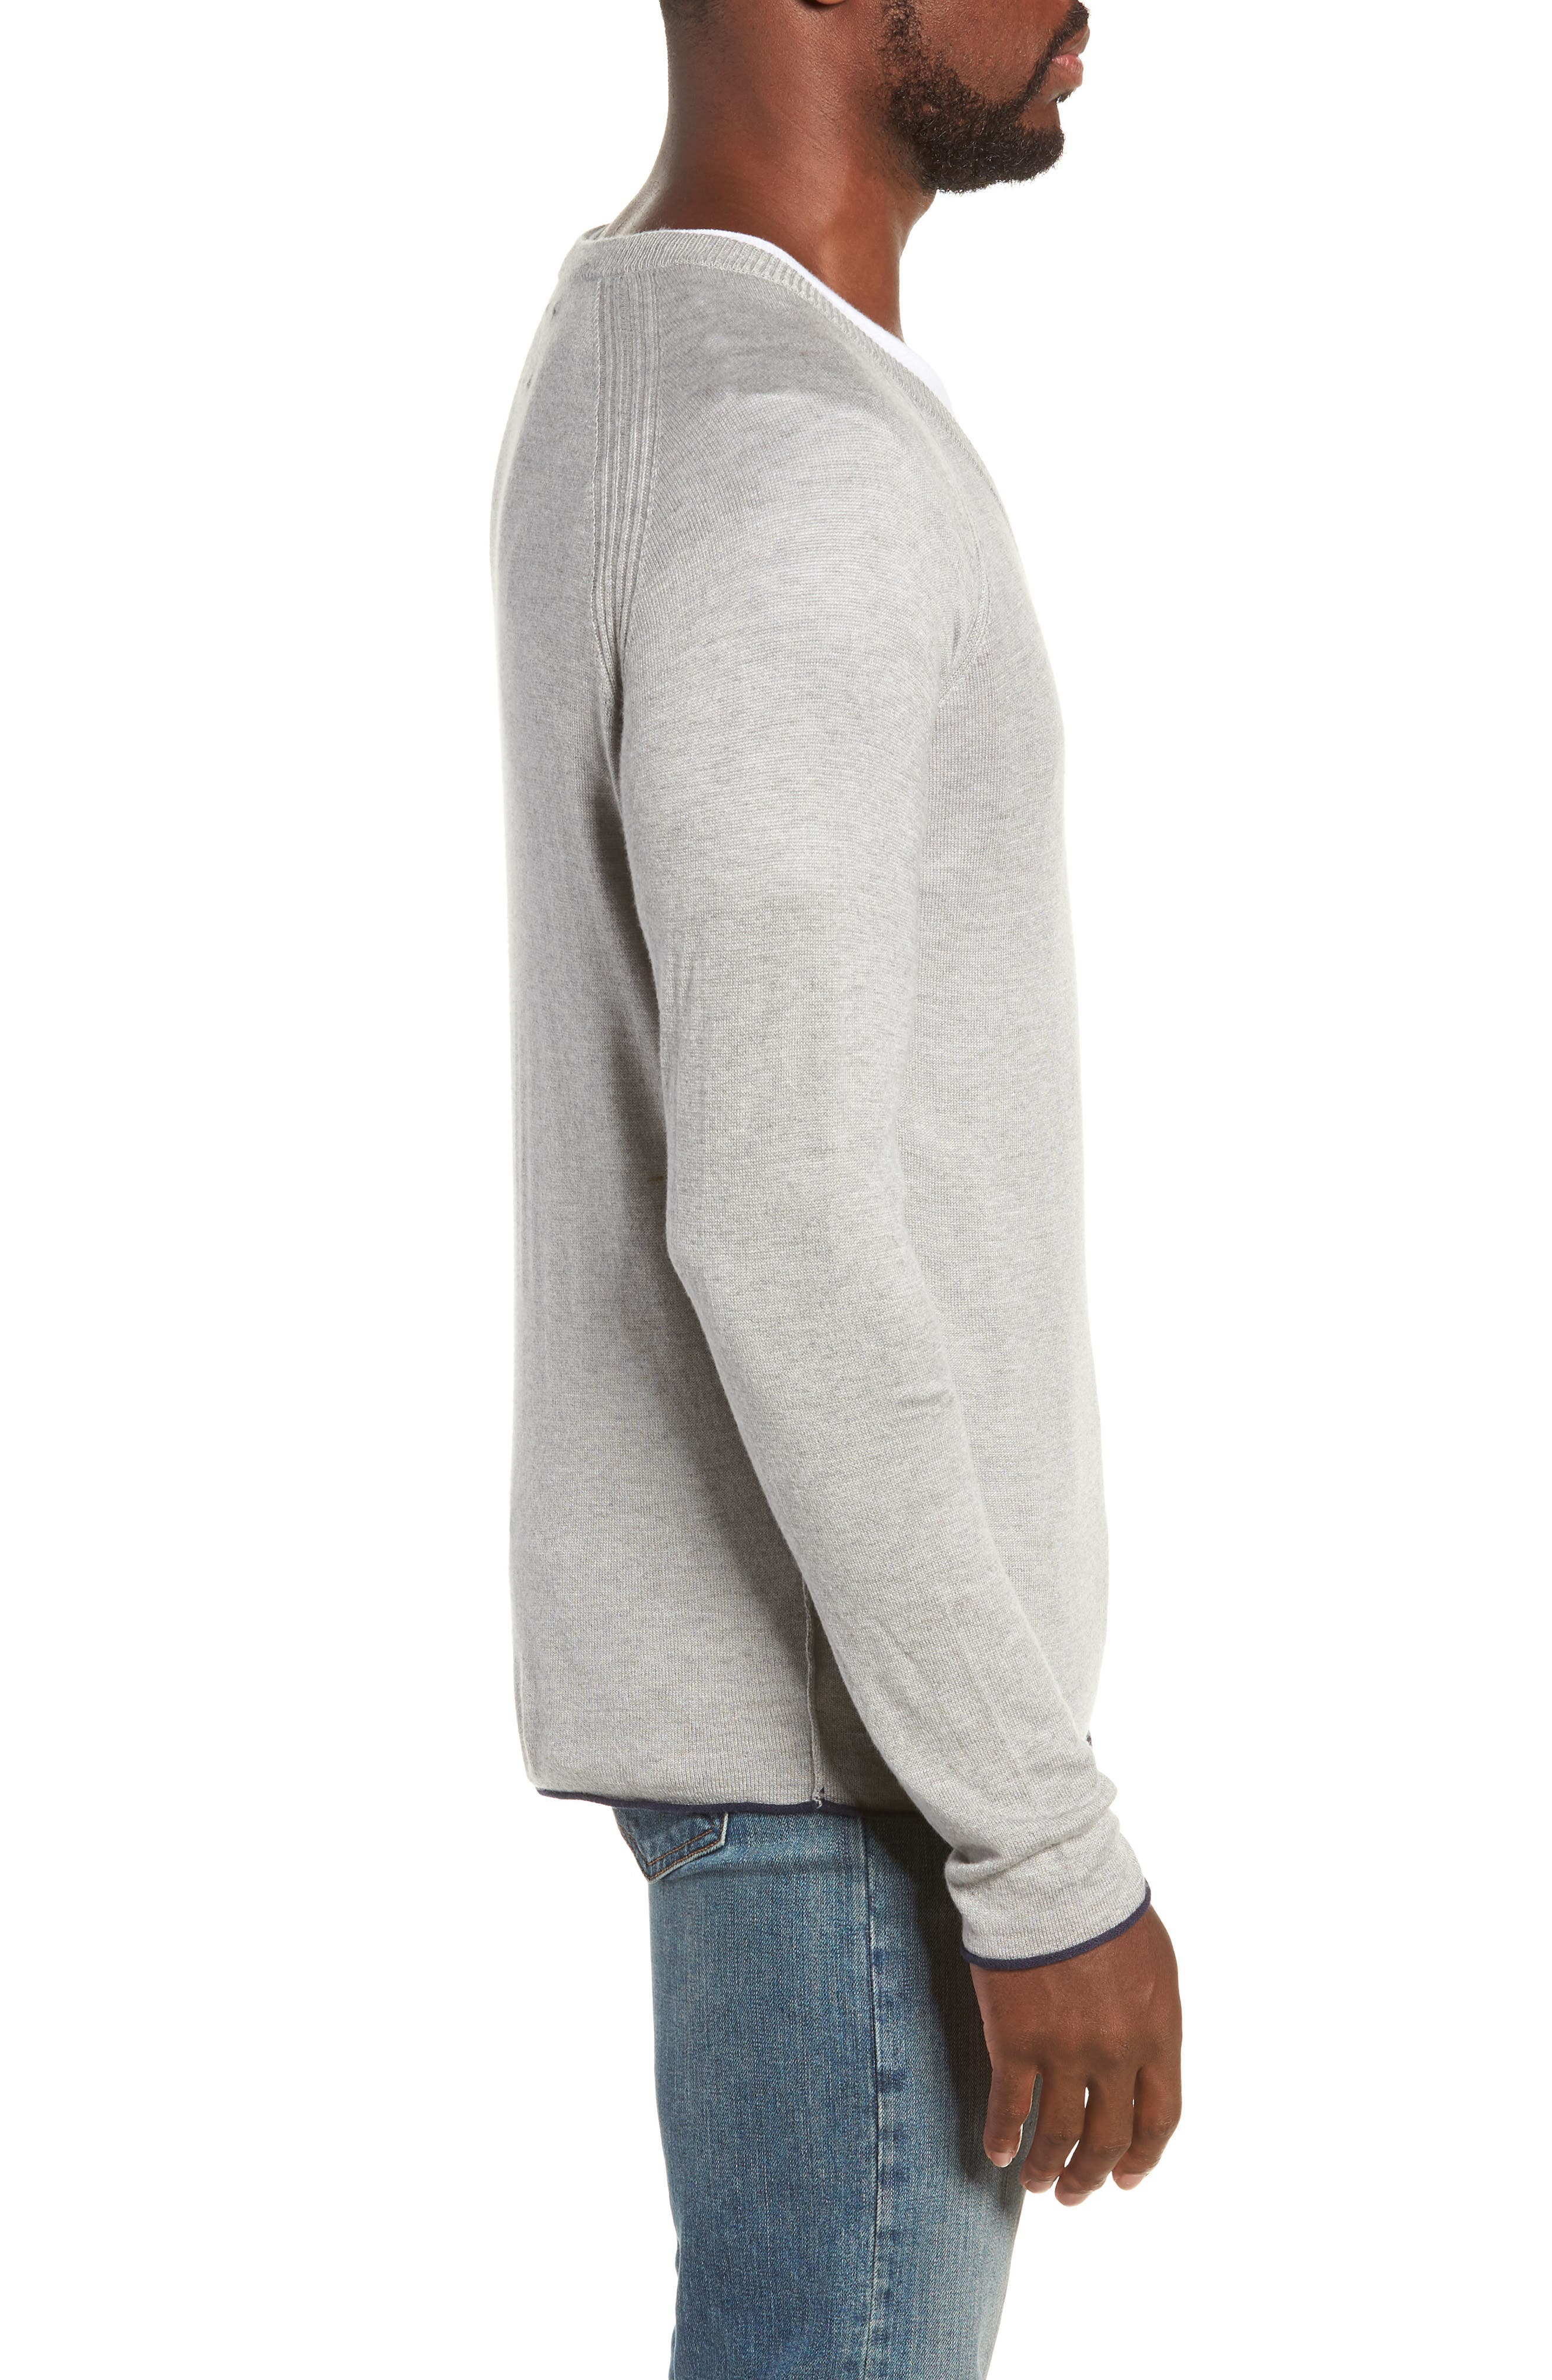 Salinas Cash V-Neck Sweater,                             Alternate thumbnail 3, color,                             GREY HEATHER